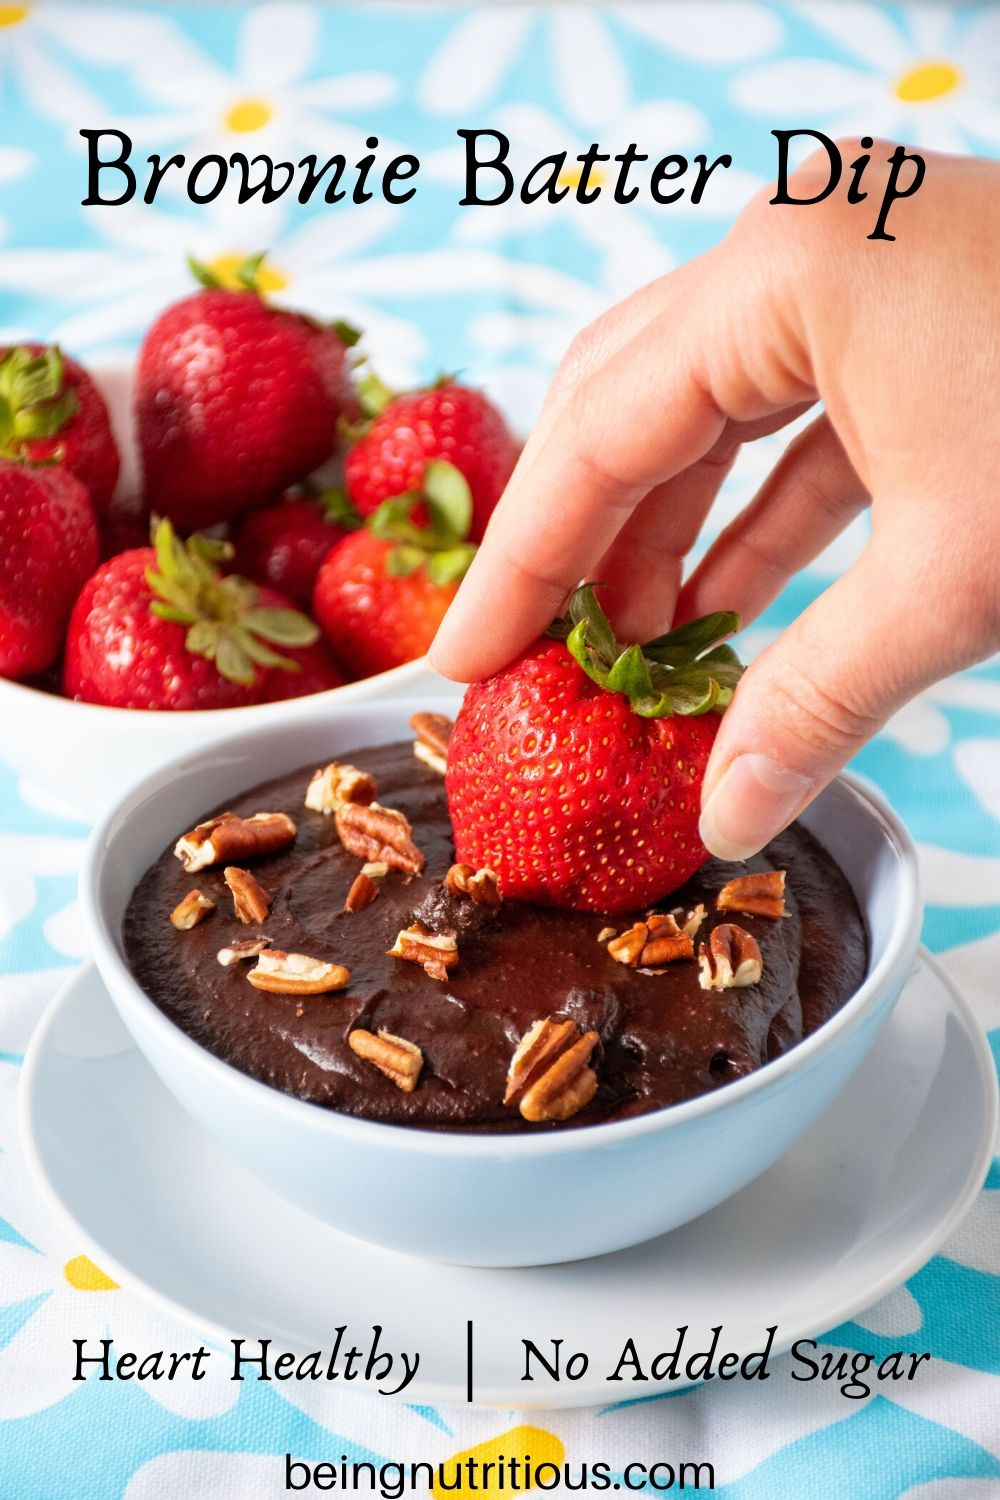 Brownie batter dip in a bowl with pecan pieces on top, and a hand dipping a strawberry in.